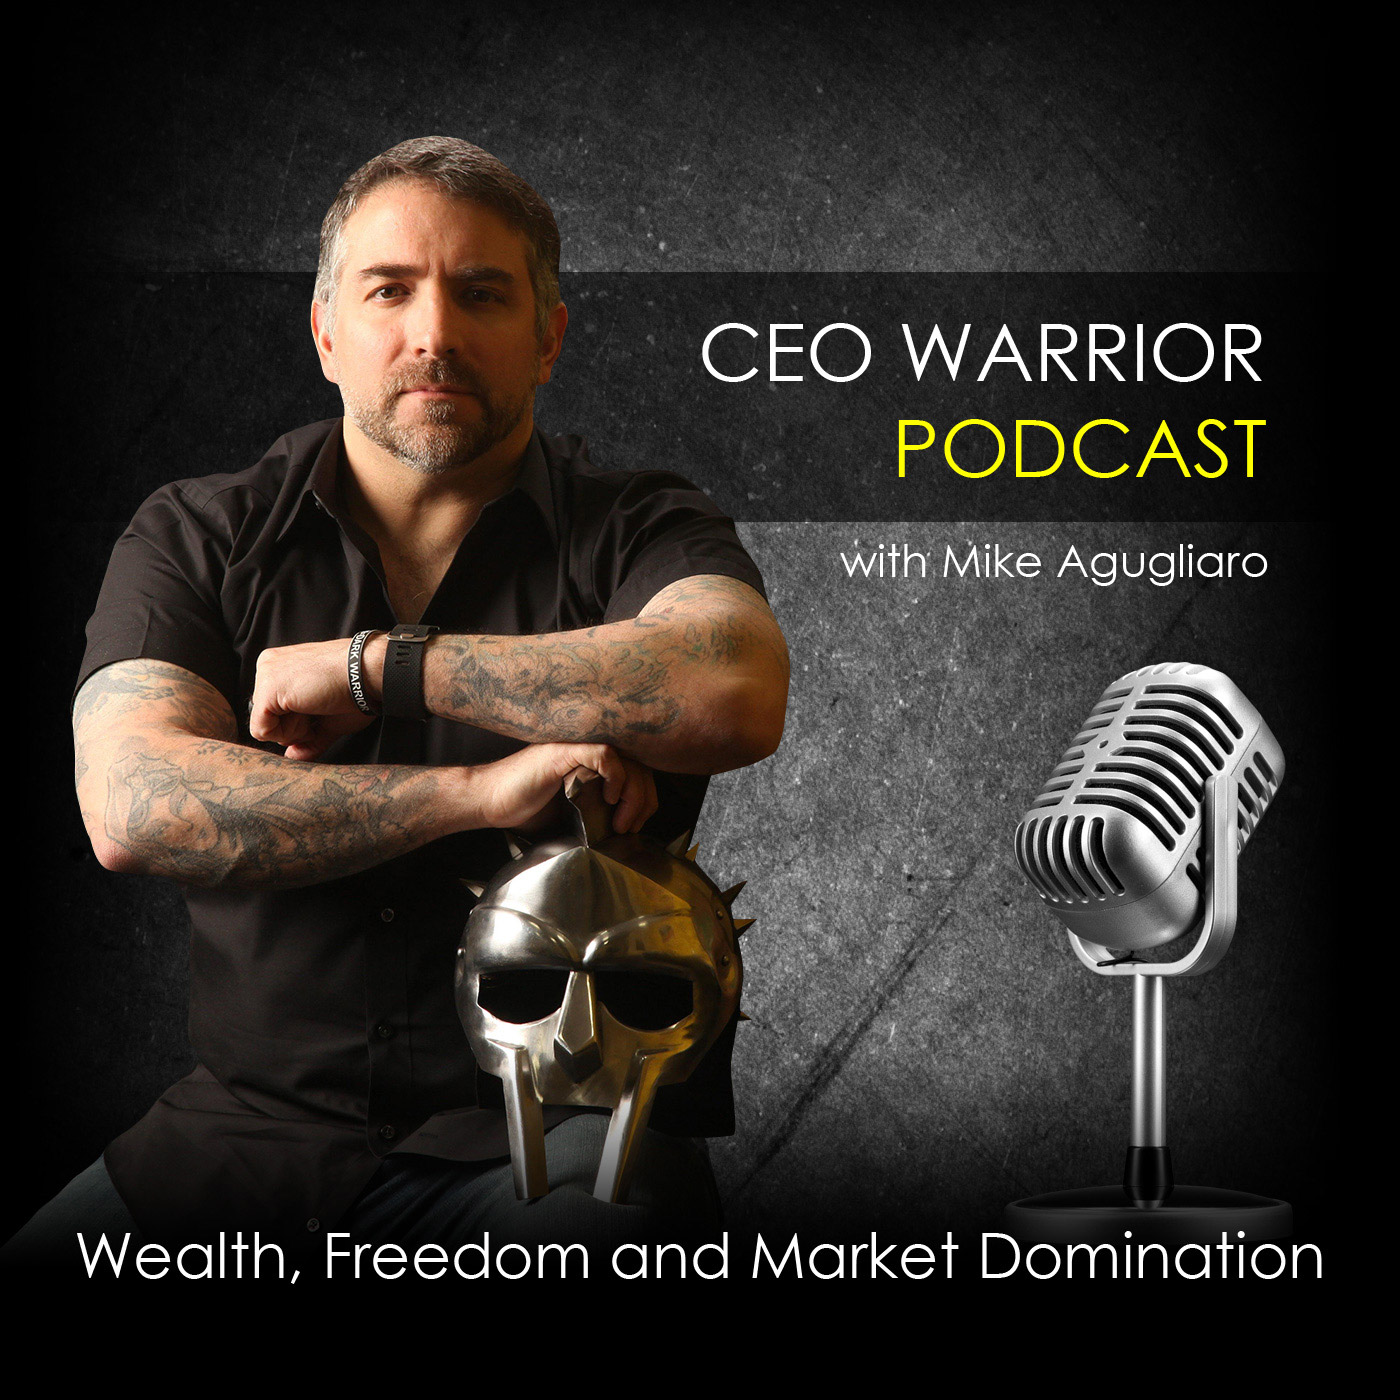 CEO Warrior Podcast with Mike Agugliaro